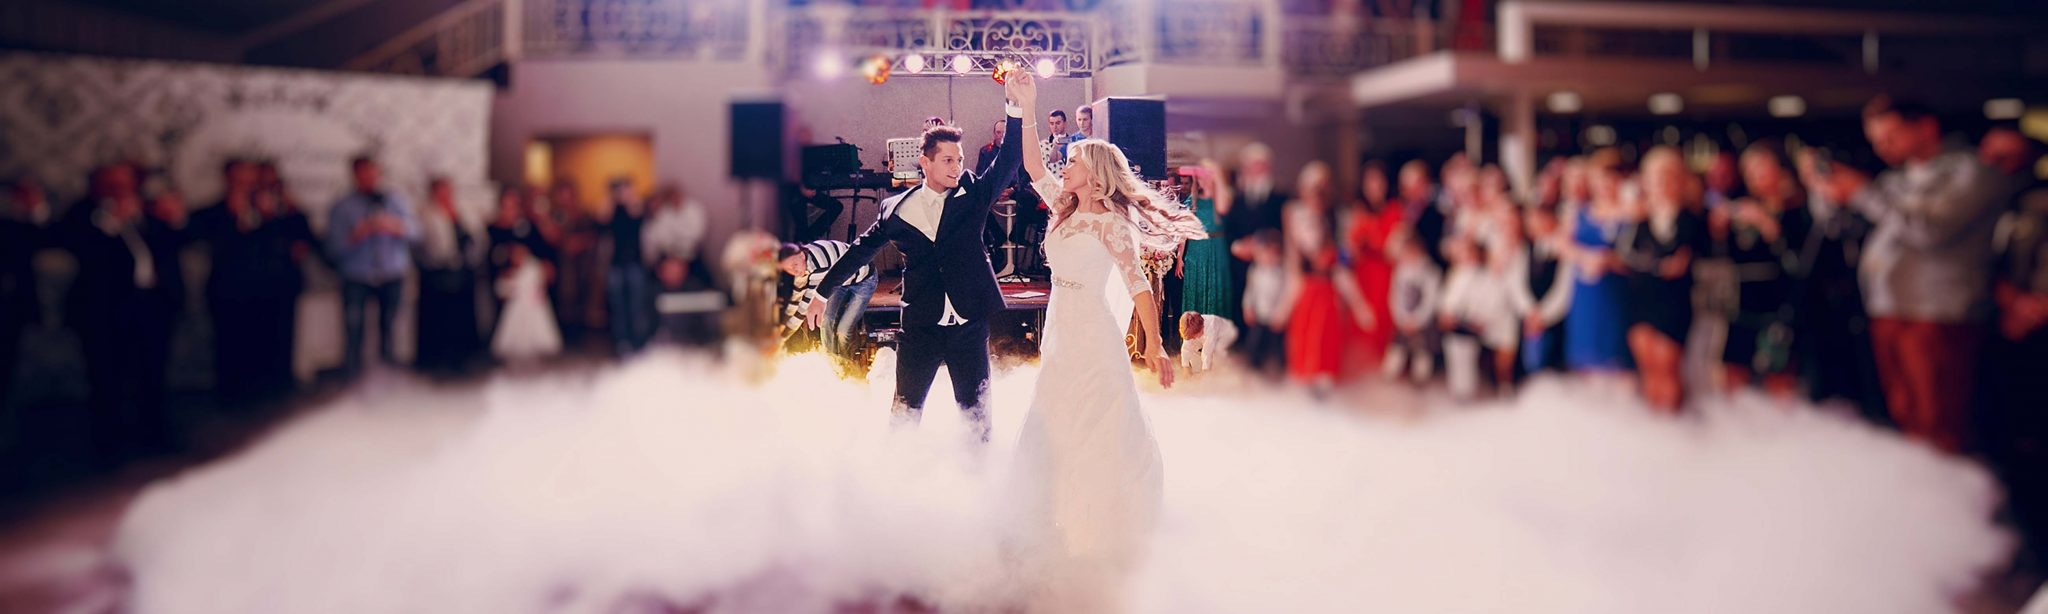 We Are So Excited That You Have Chosen To Prepare For Your Big Day By Taking Ballroom Dance Lessons Whether Goal In Commemorating First Is